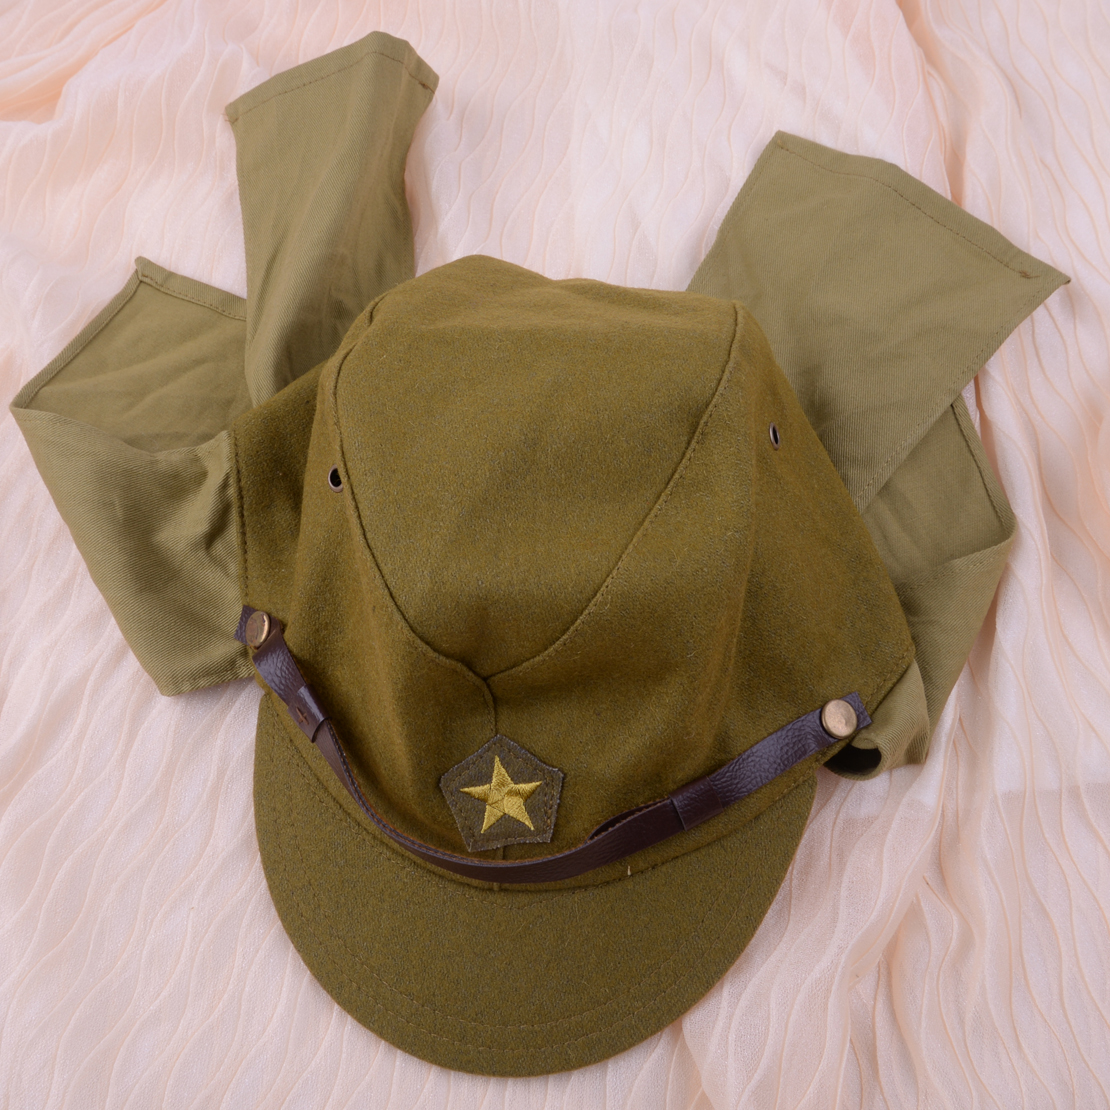 Green Officer Field Wool World War II WW2 Japanese Army Soldier Hat Cap Military Costume Accessory For Men